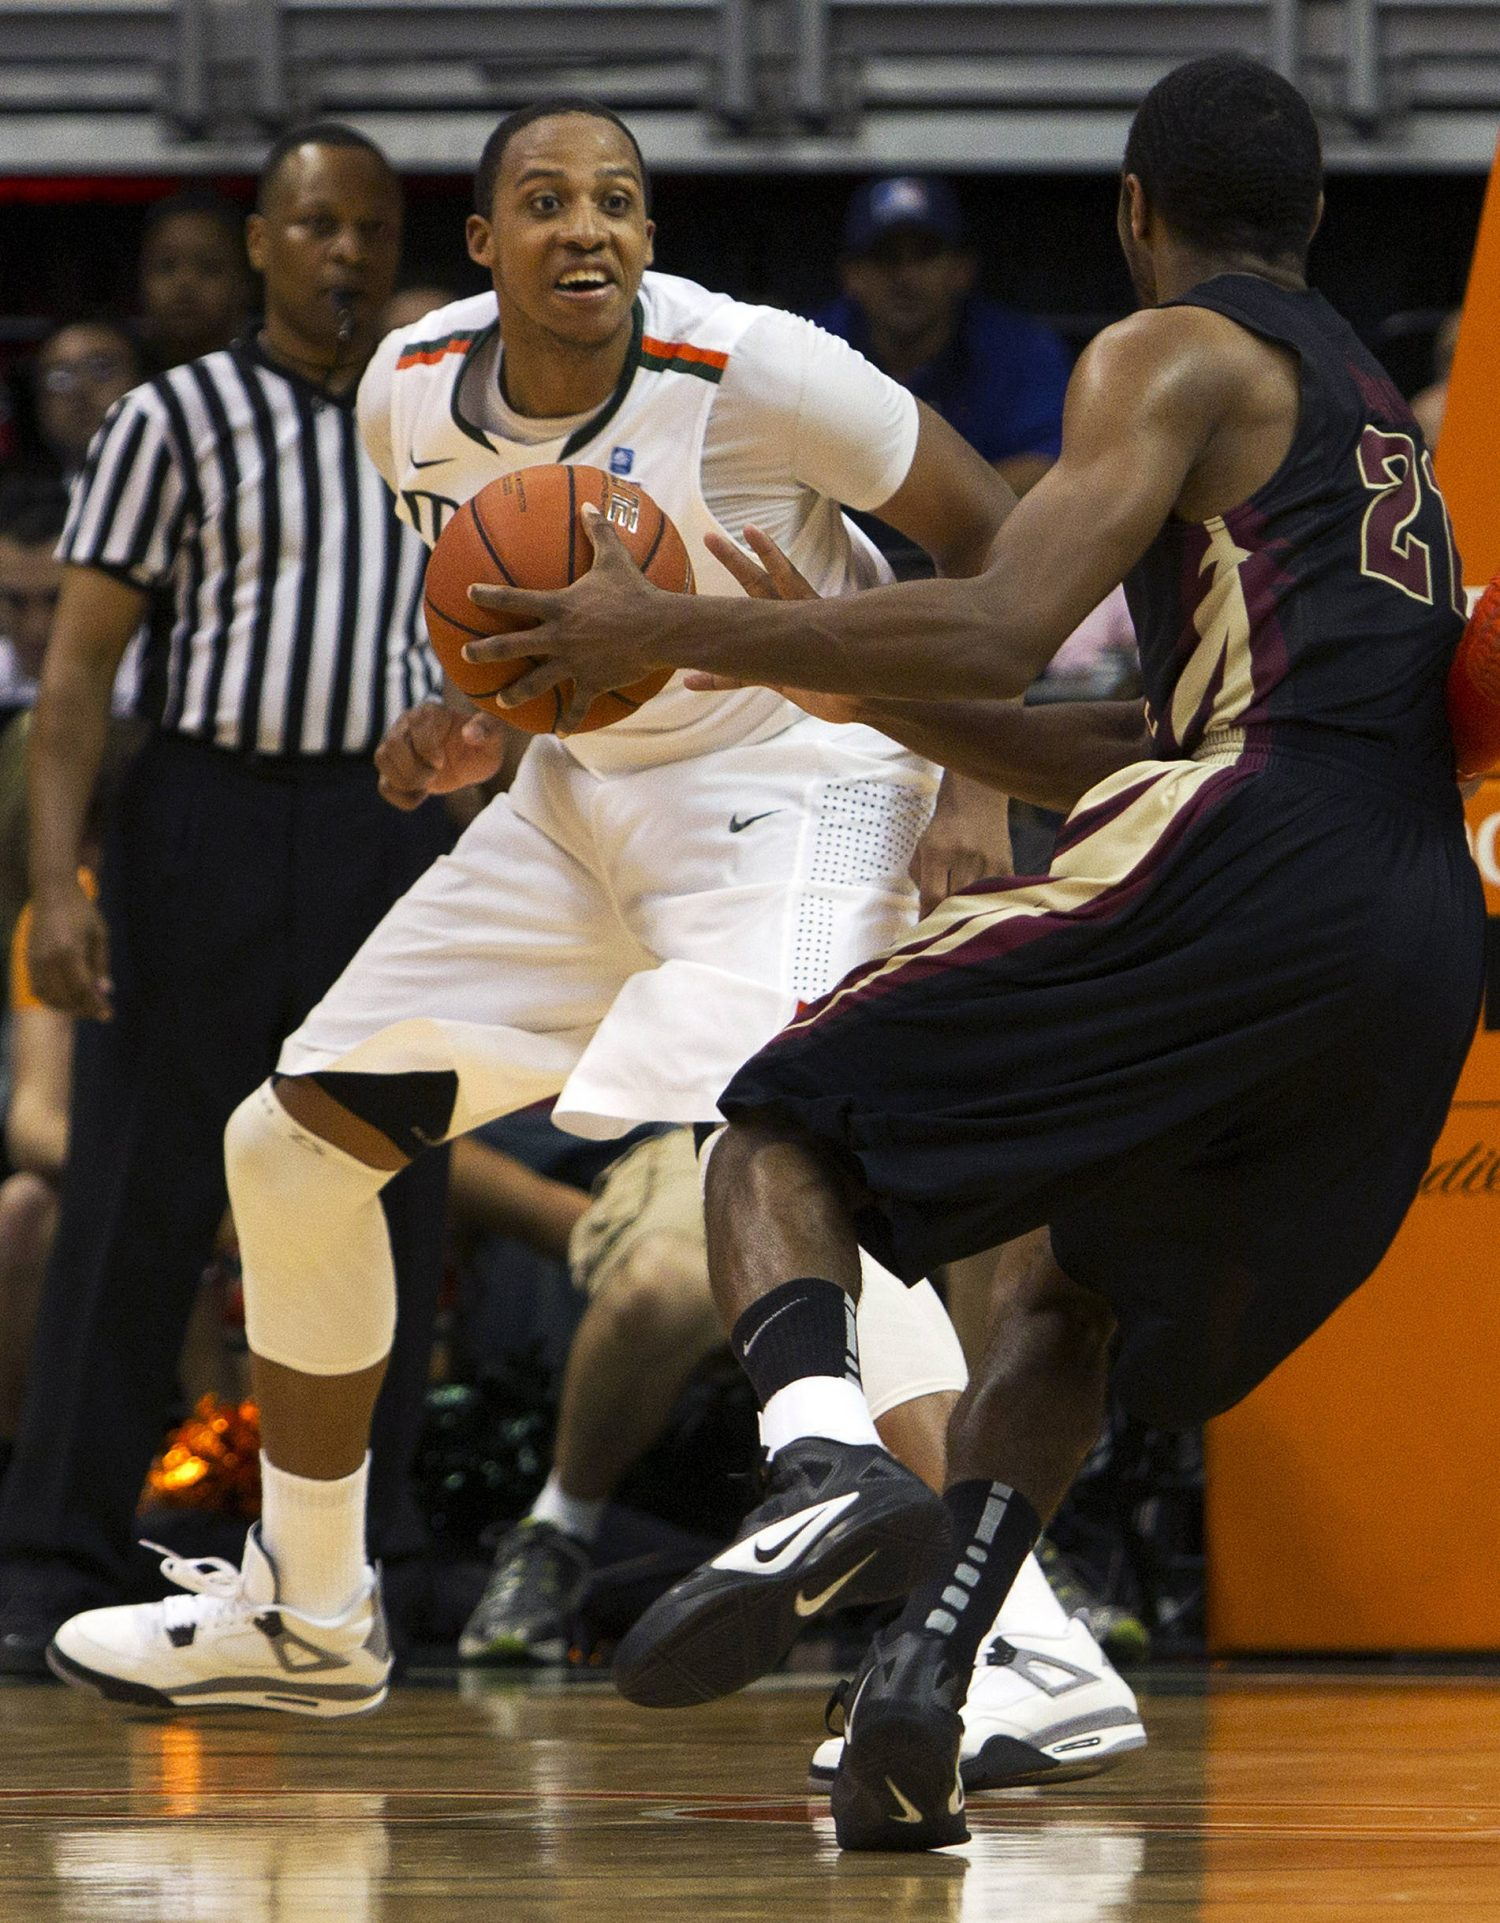 Miami's Kenny Kadji, left, forces Florida State's Michael Snaer (21) to pass the ball off during the second half of an NCAA college basketball game in Coral Gables, Fla., Sunday, Feb. 26, 2012. Miami defeated Florida State 78-62. (AP Photo/J Pat Carter)